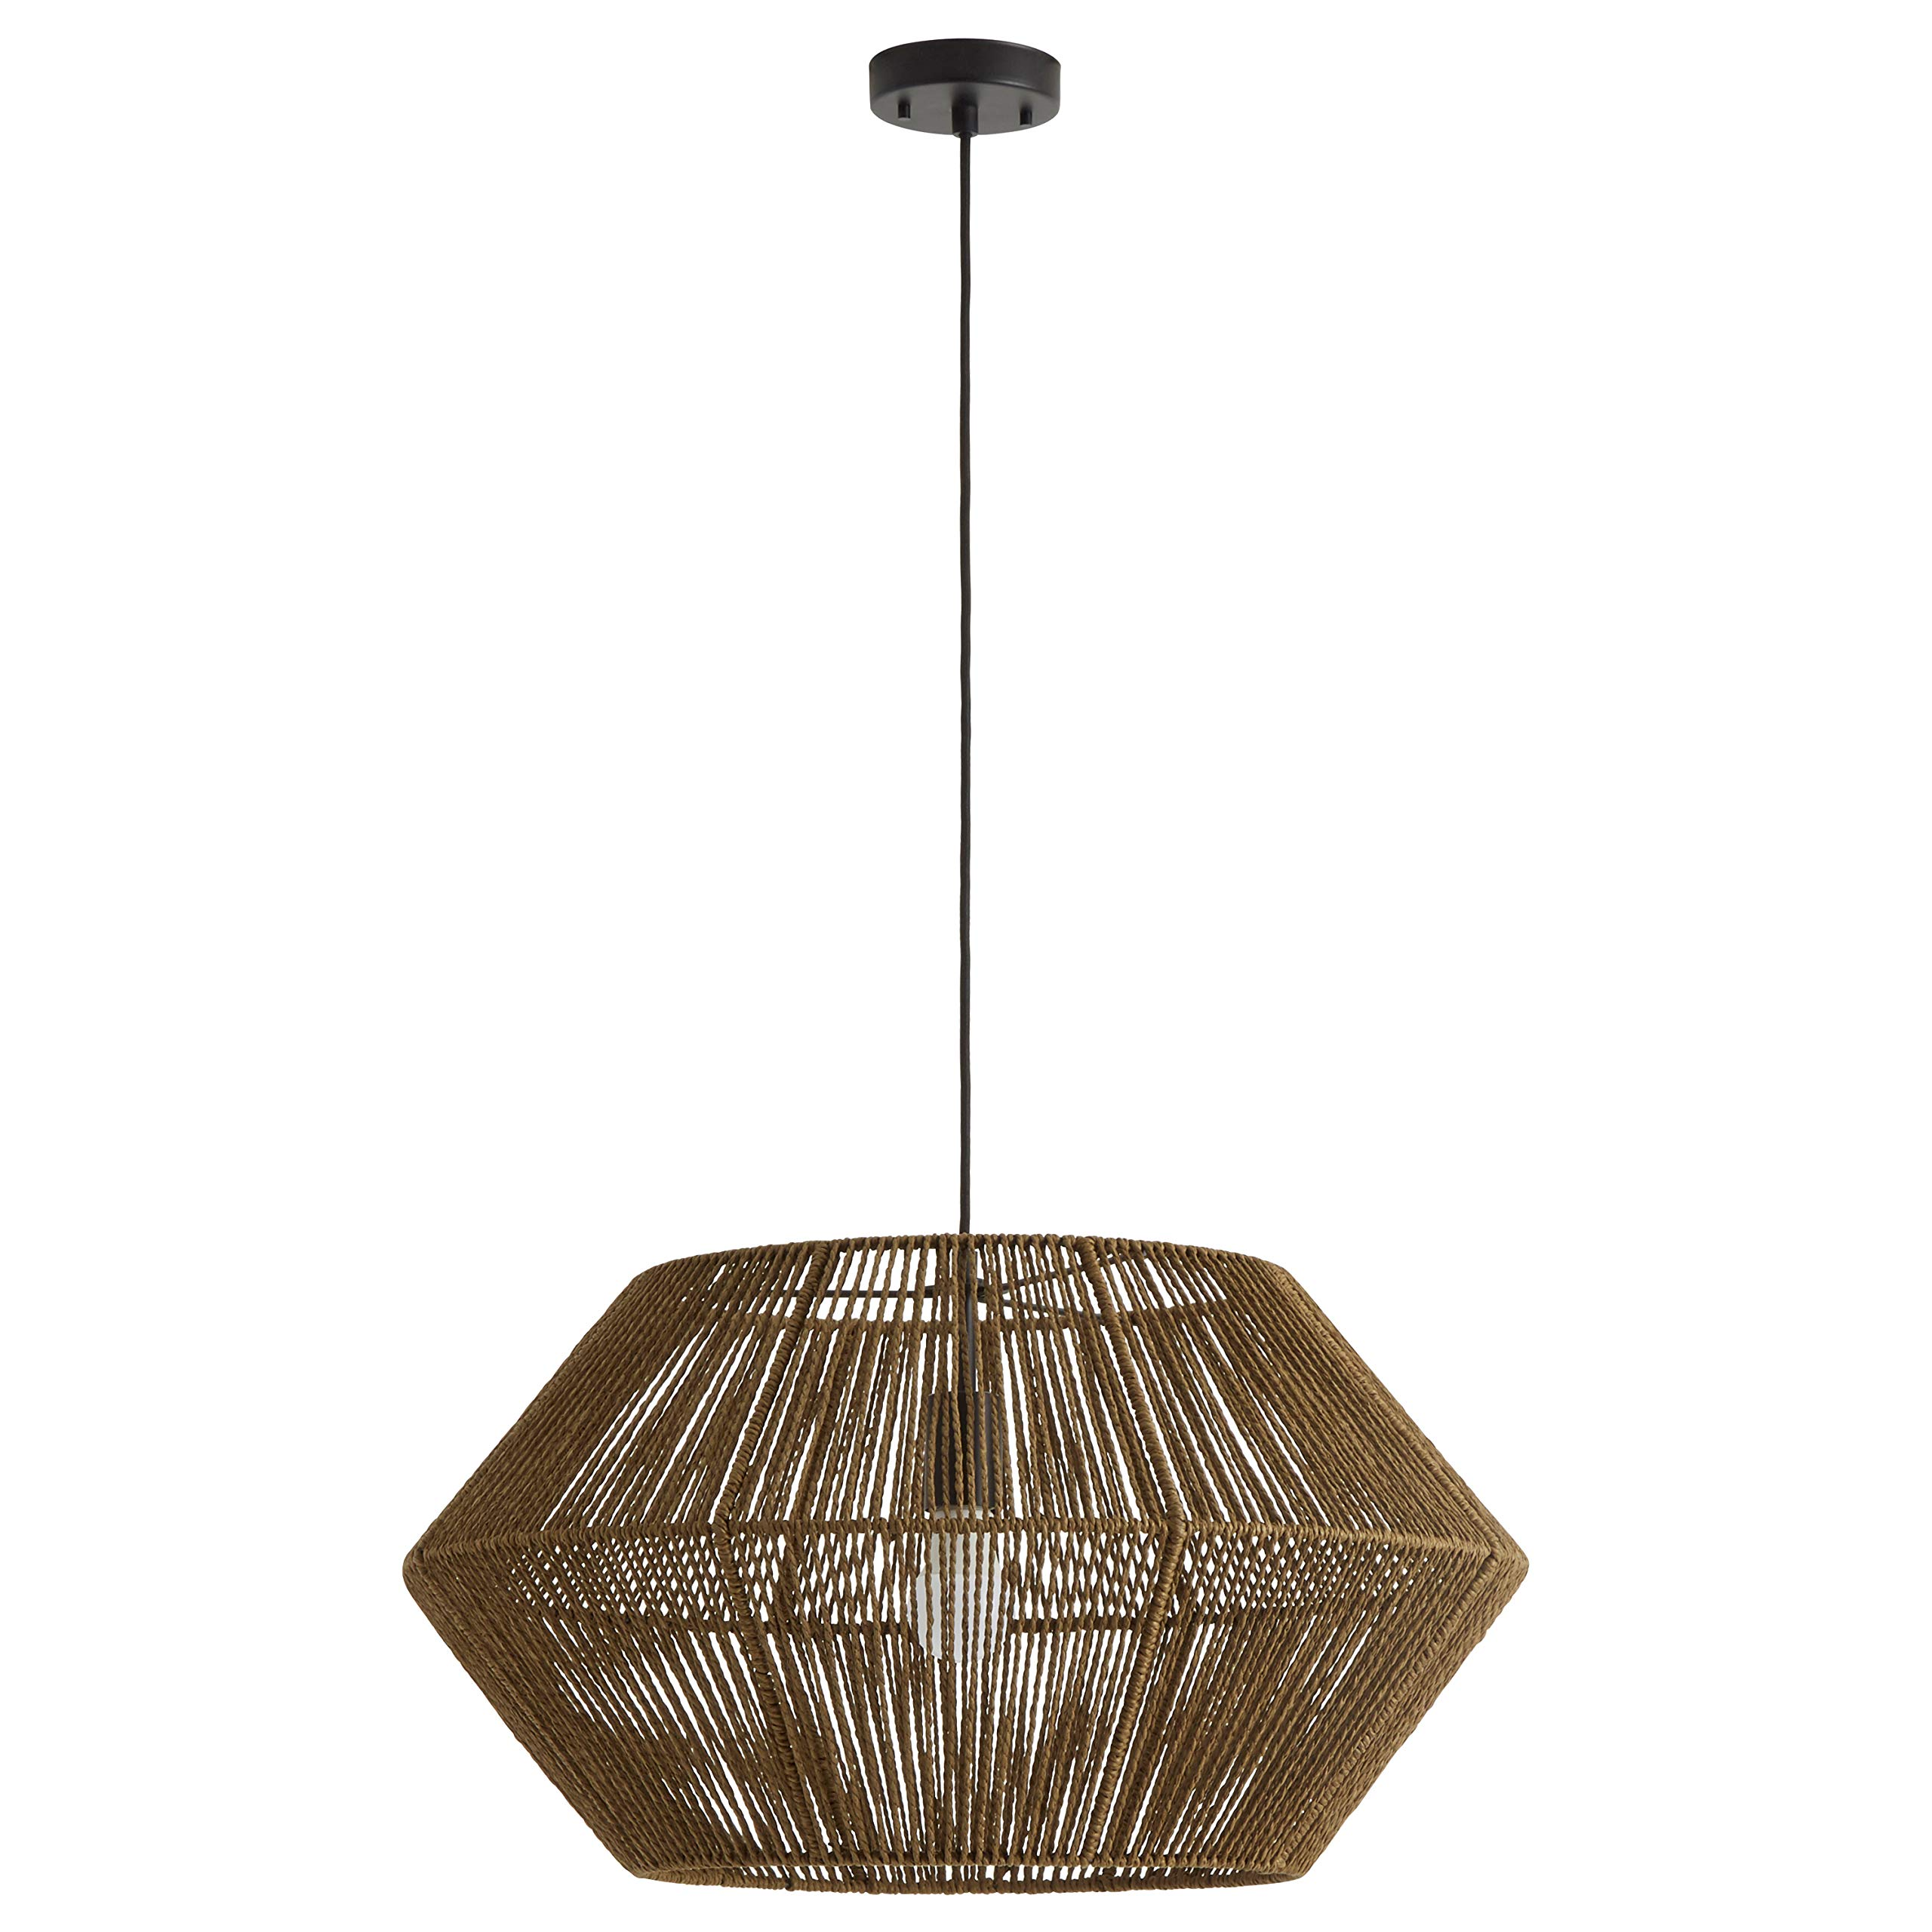 Rivet Rustic Natural Material Construction Pendant Light with Bulb, 60''H, Brown